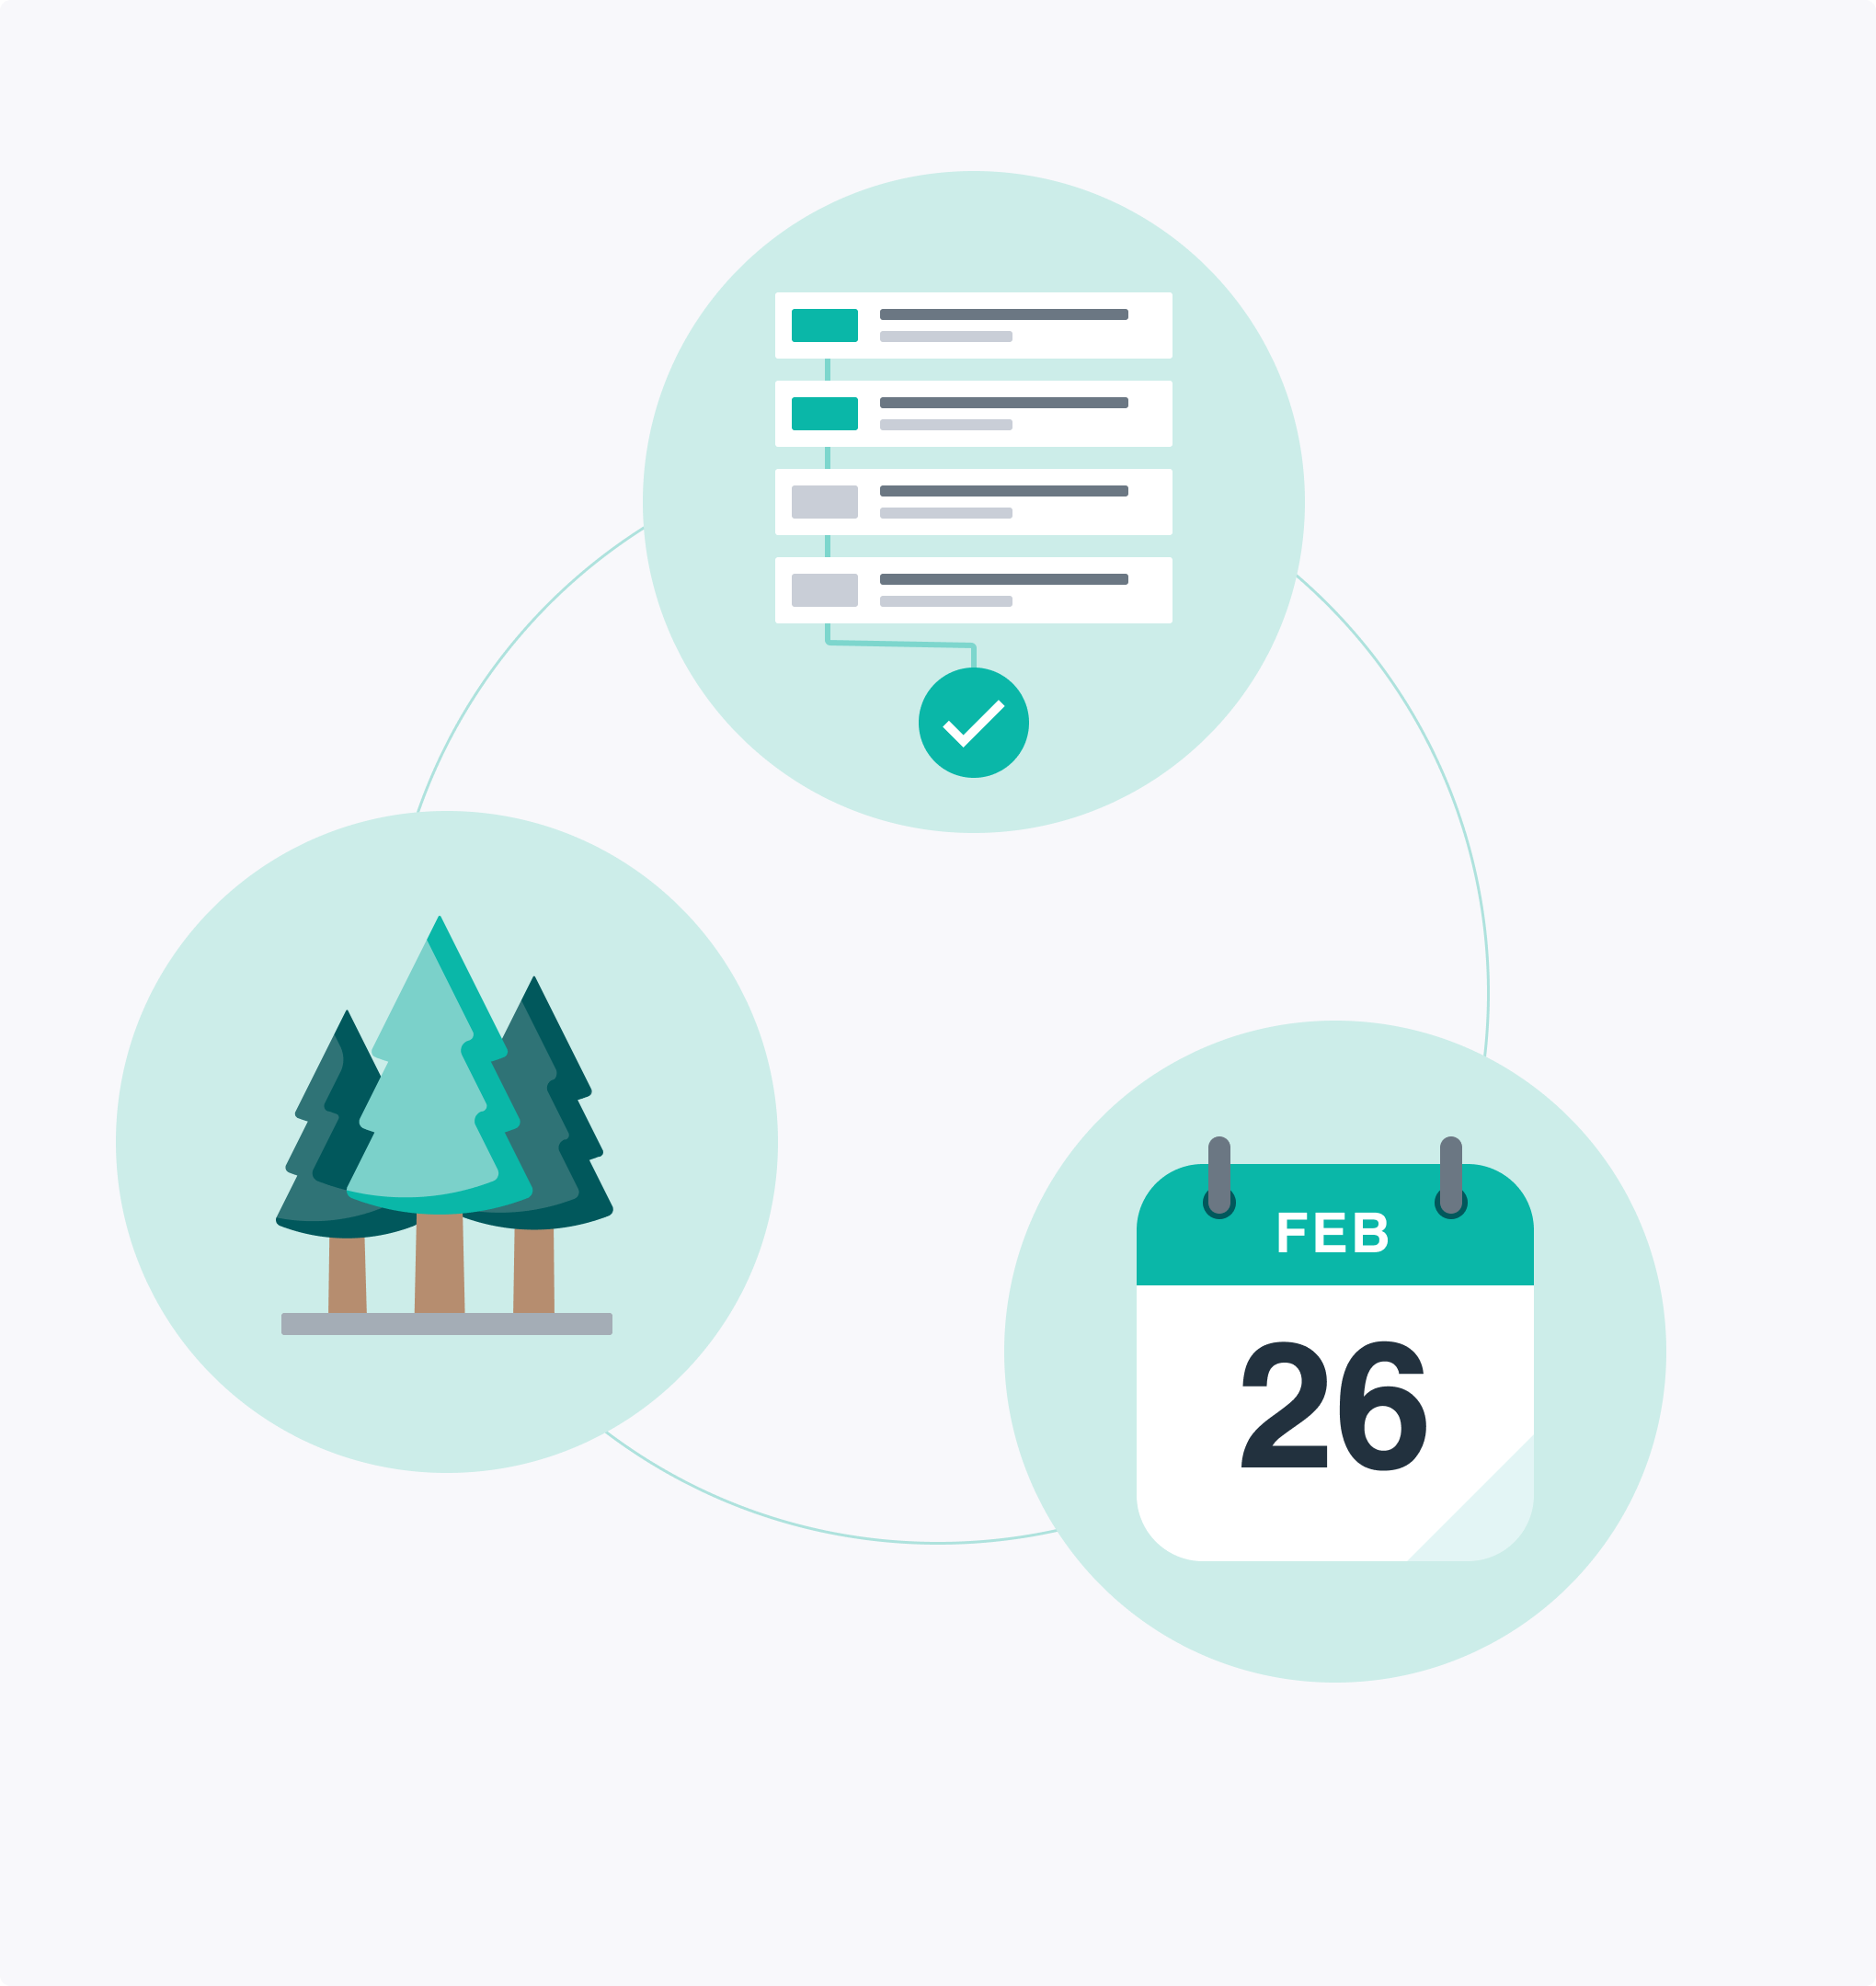 Icon with evergreen trees connected to an icon with a calendar and an icon with cards connected together in an installment plan.